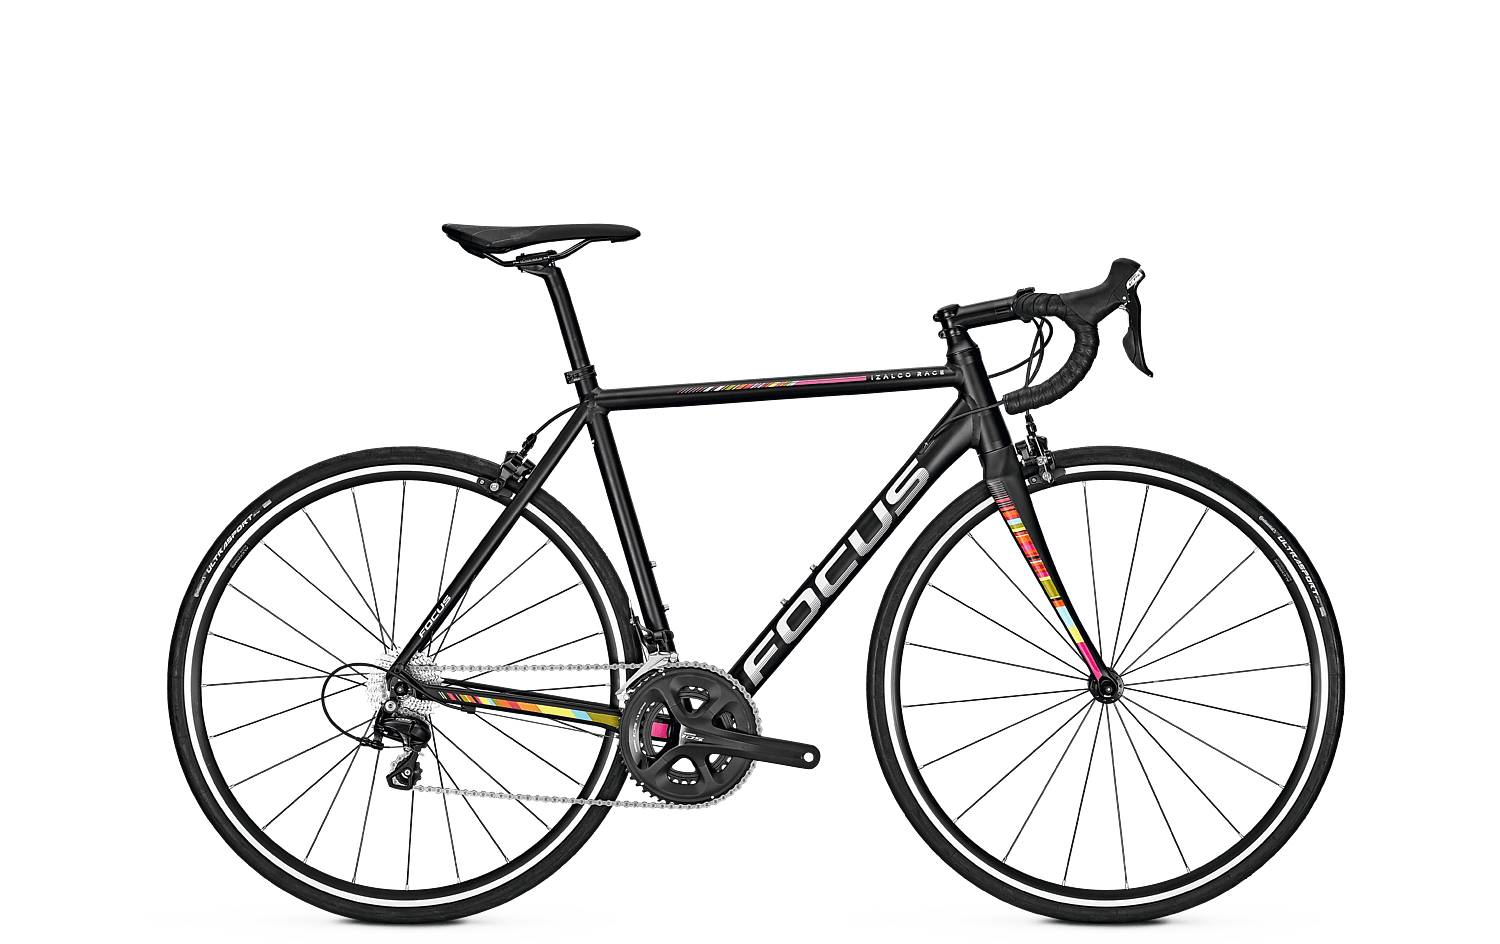 "Велосипед шоссейный Focus - Izalco Race Al 105 22G 28"" 57/L Freestyle Black L (FCS 628012403)"